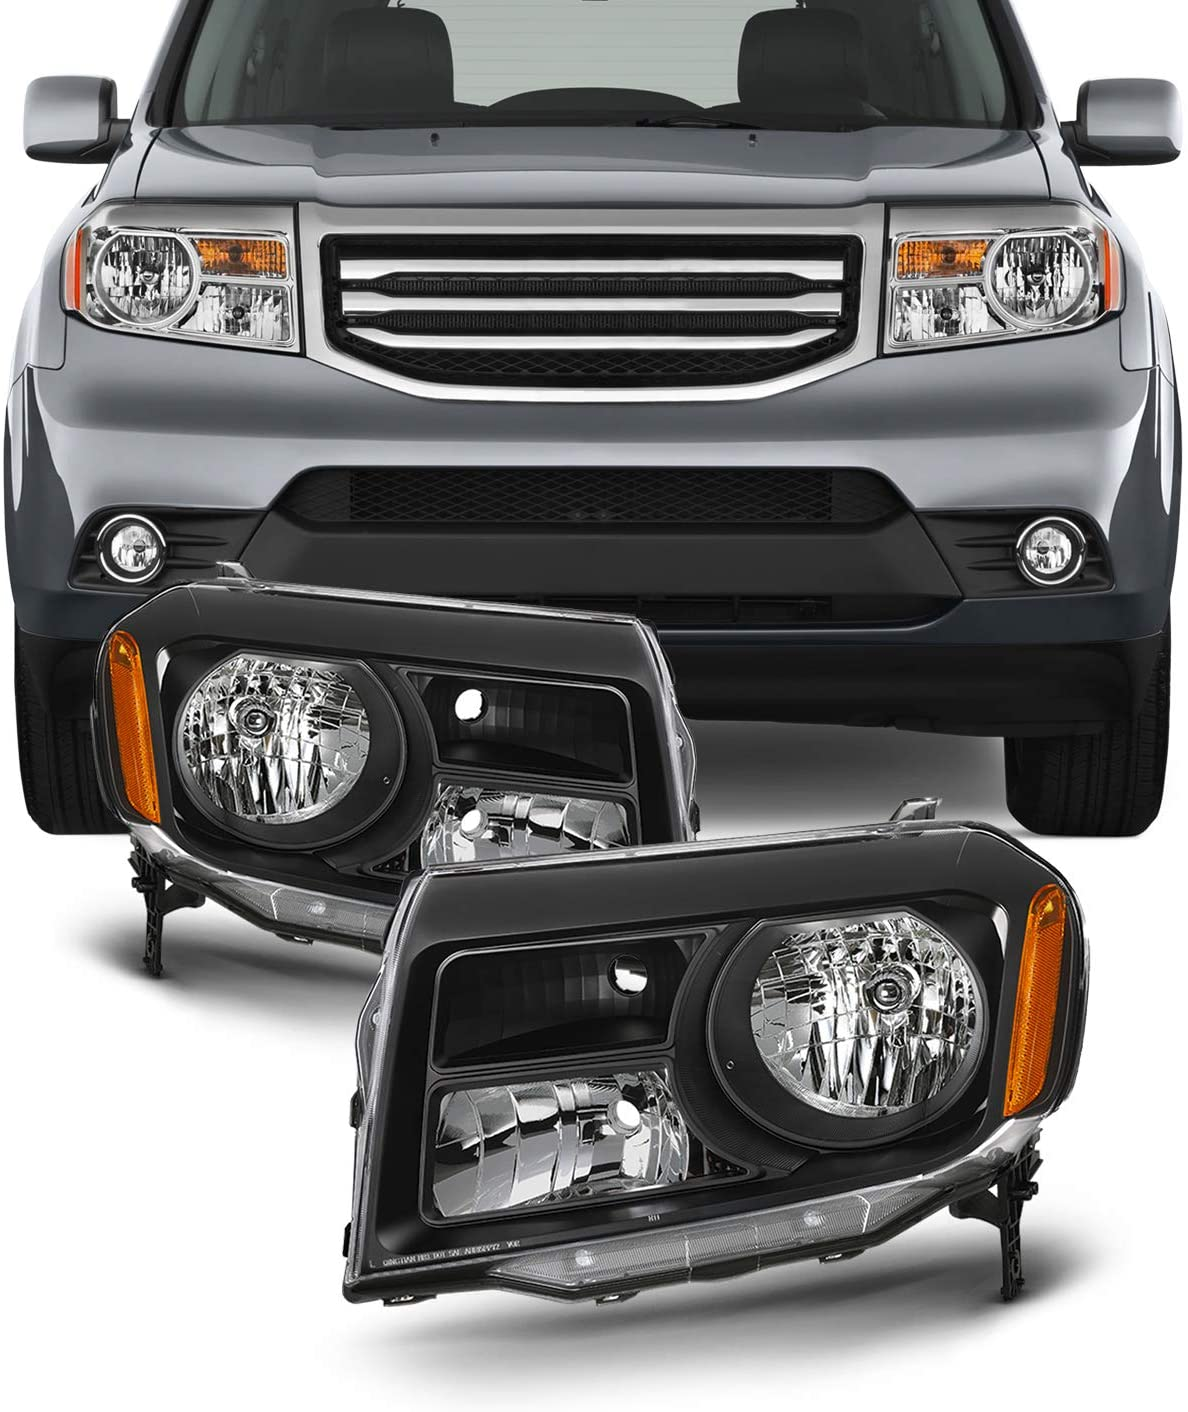 Fits 2012 2013 2014 2015 Honda Pilot [Halogen Type] Black Bezel Headlights Lamps Replacement